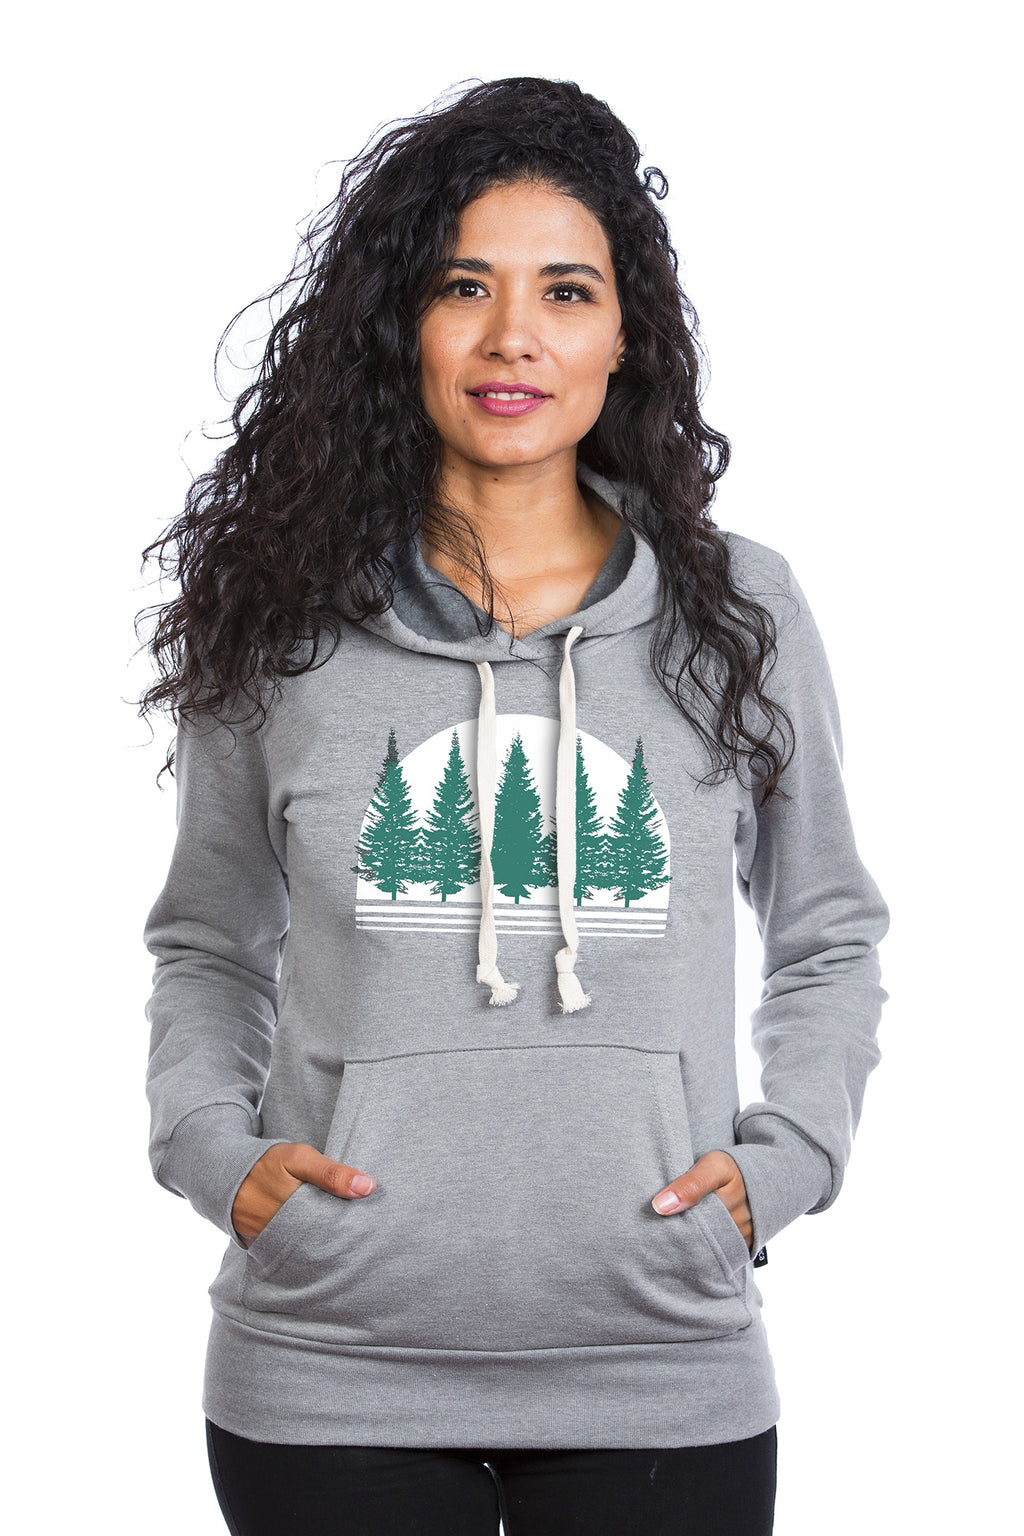 Boreal Forest Hoodie Hoody Women femme kangourou coton ouate PLB fashion mode quebec local comfortable